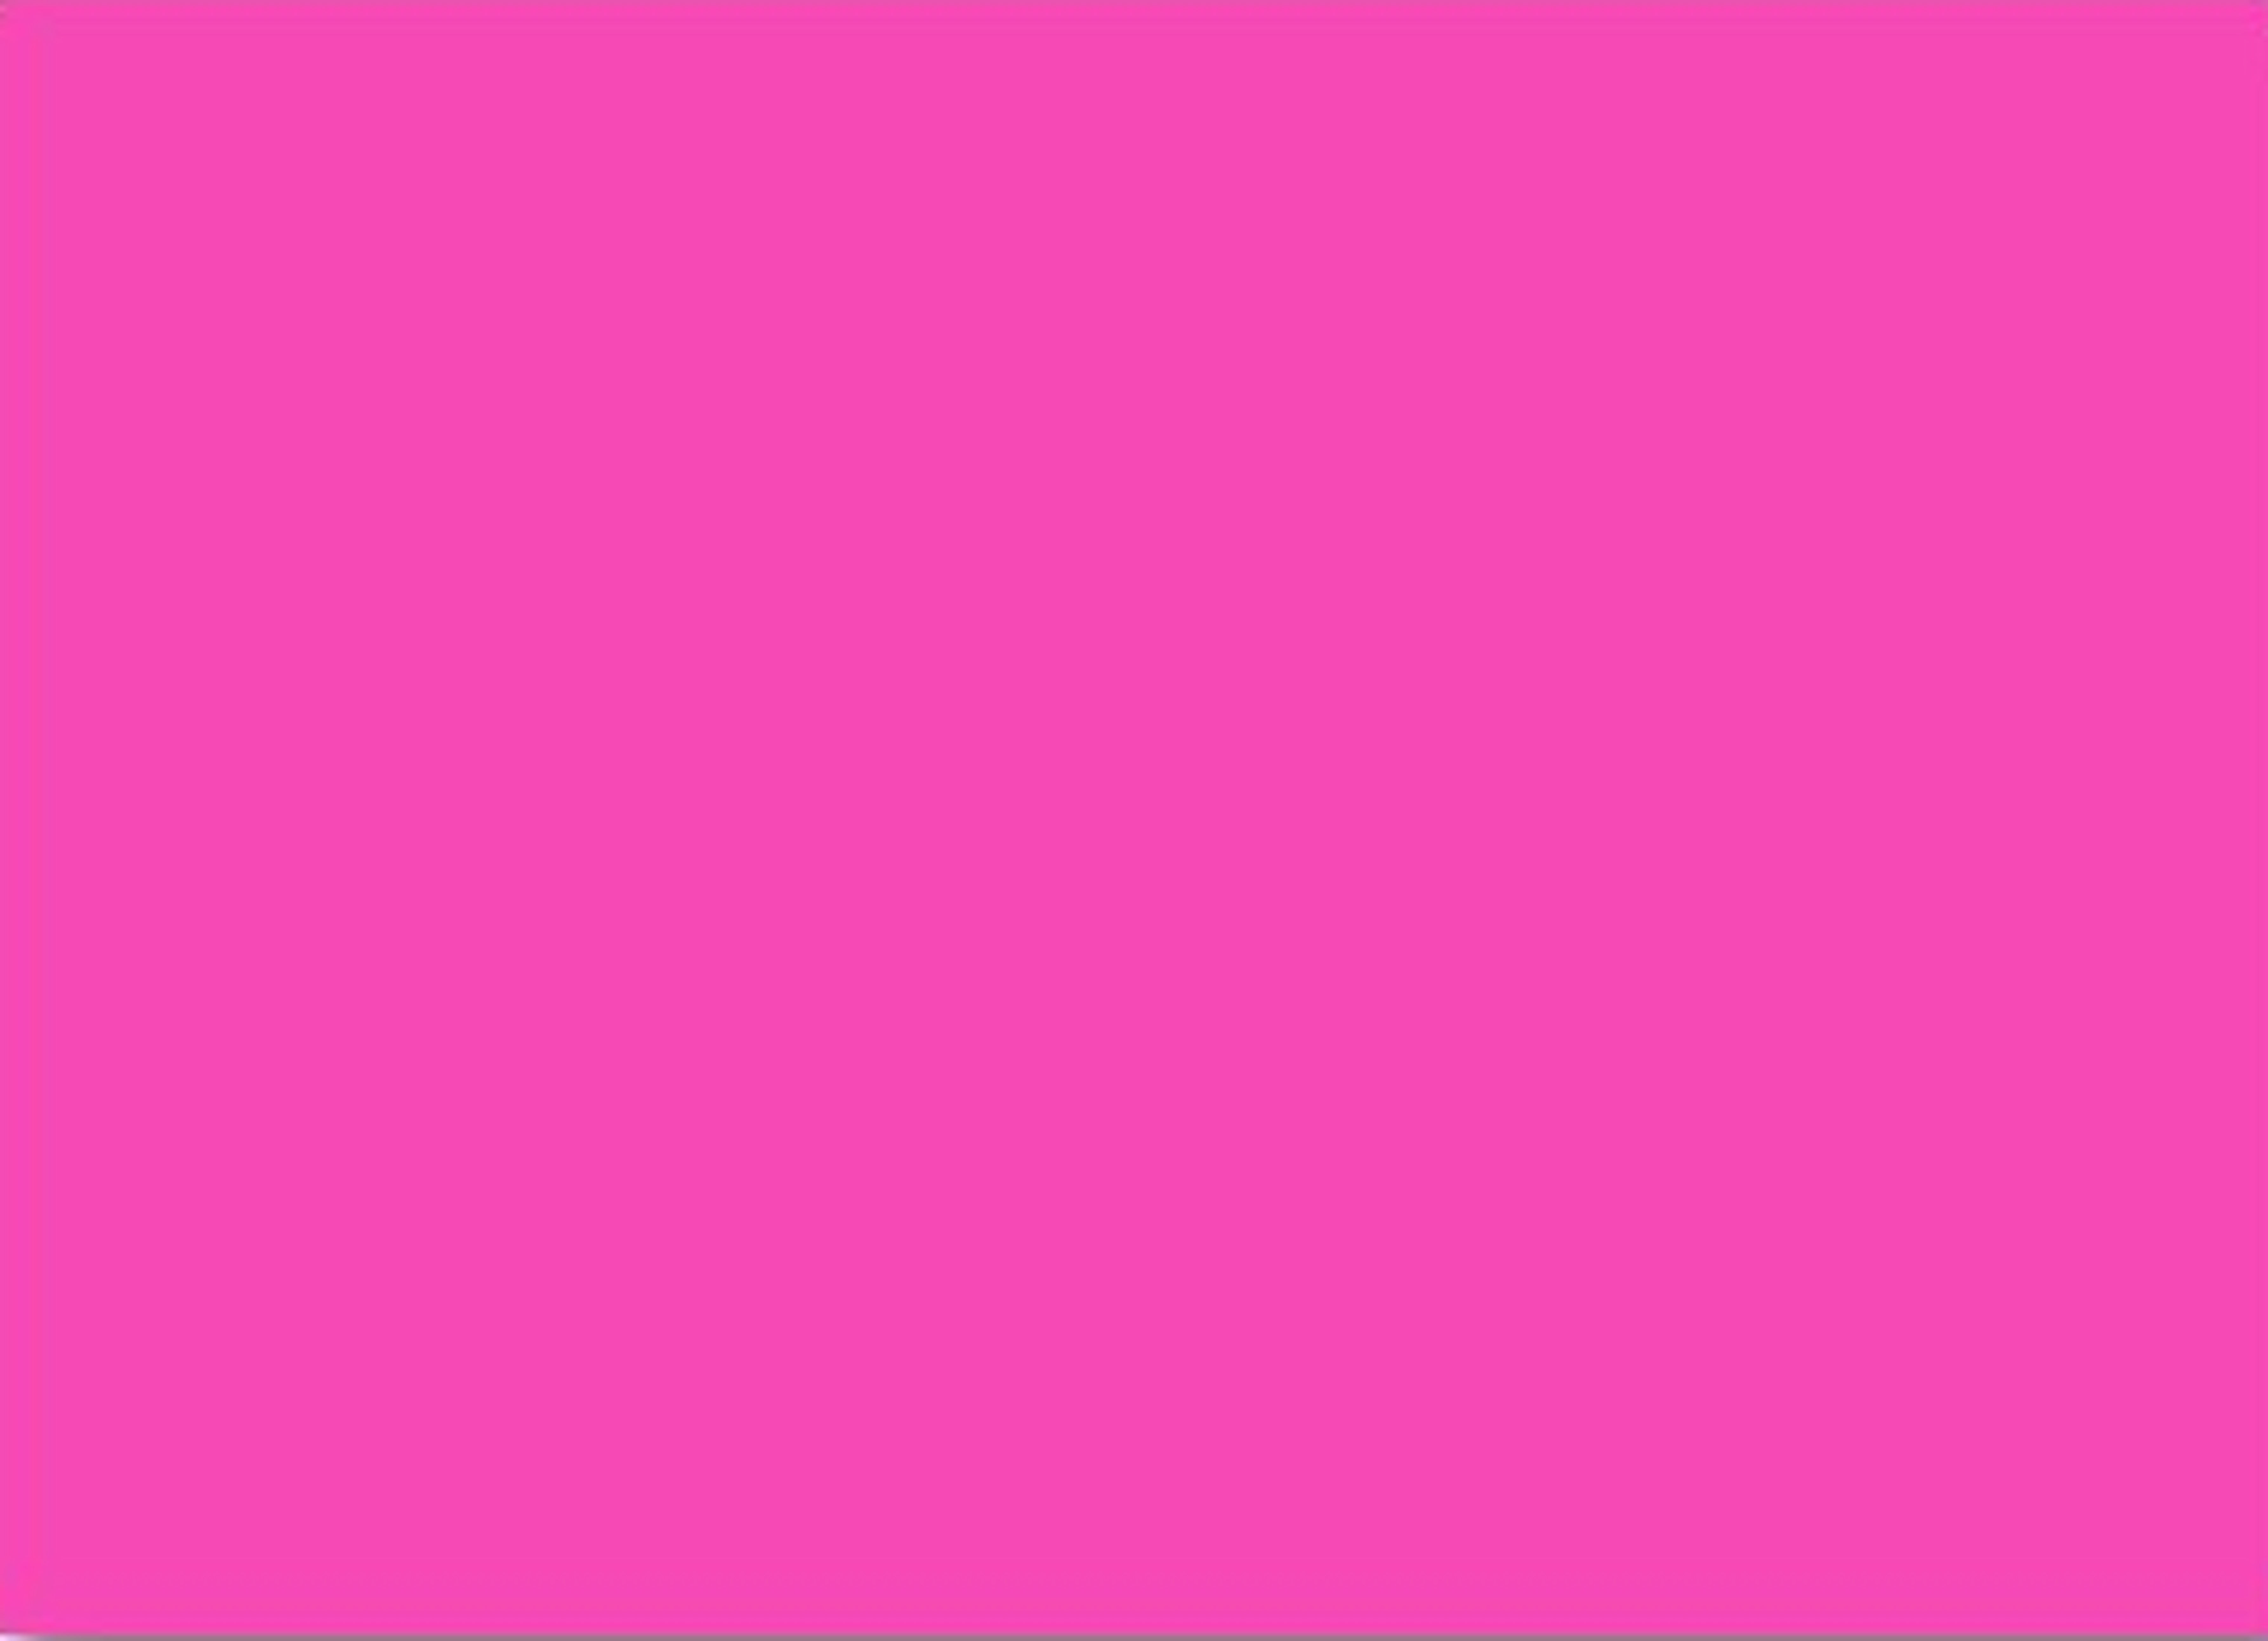 Plain Wallpapers HD pink